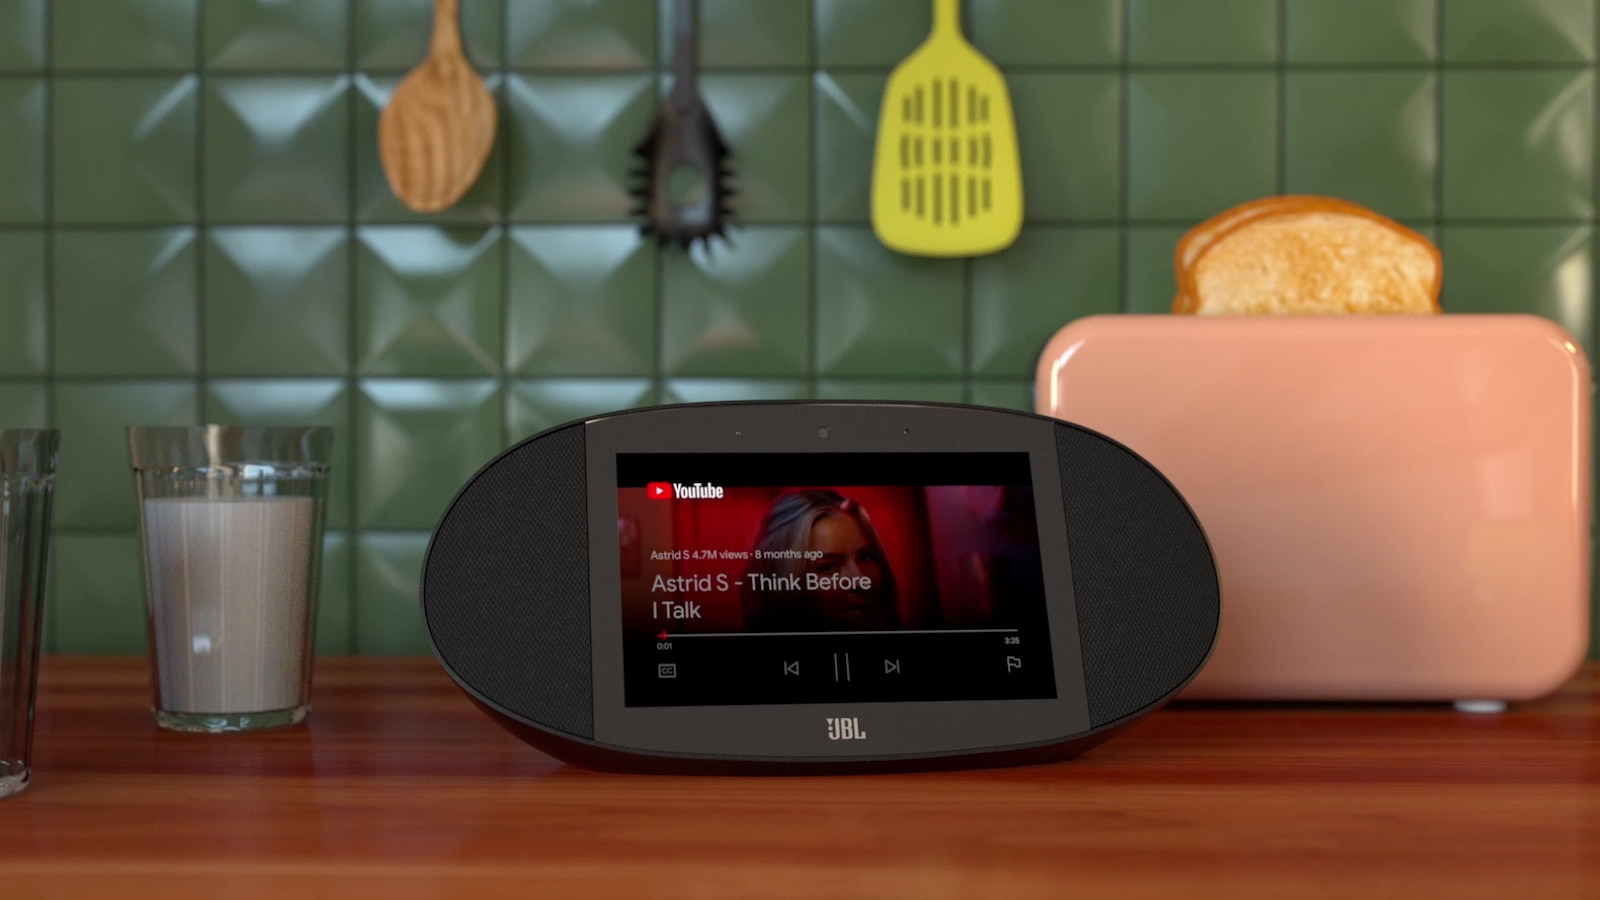 Smart Deal: $210 off the JBL Link View Google Assistant Smart Display